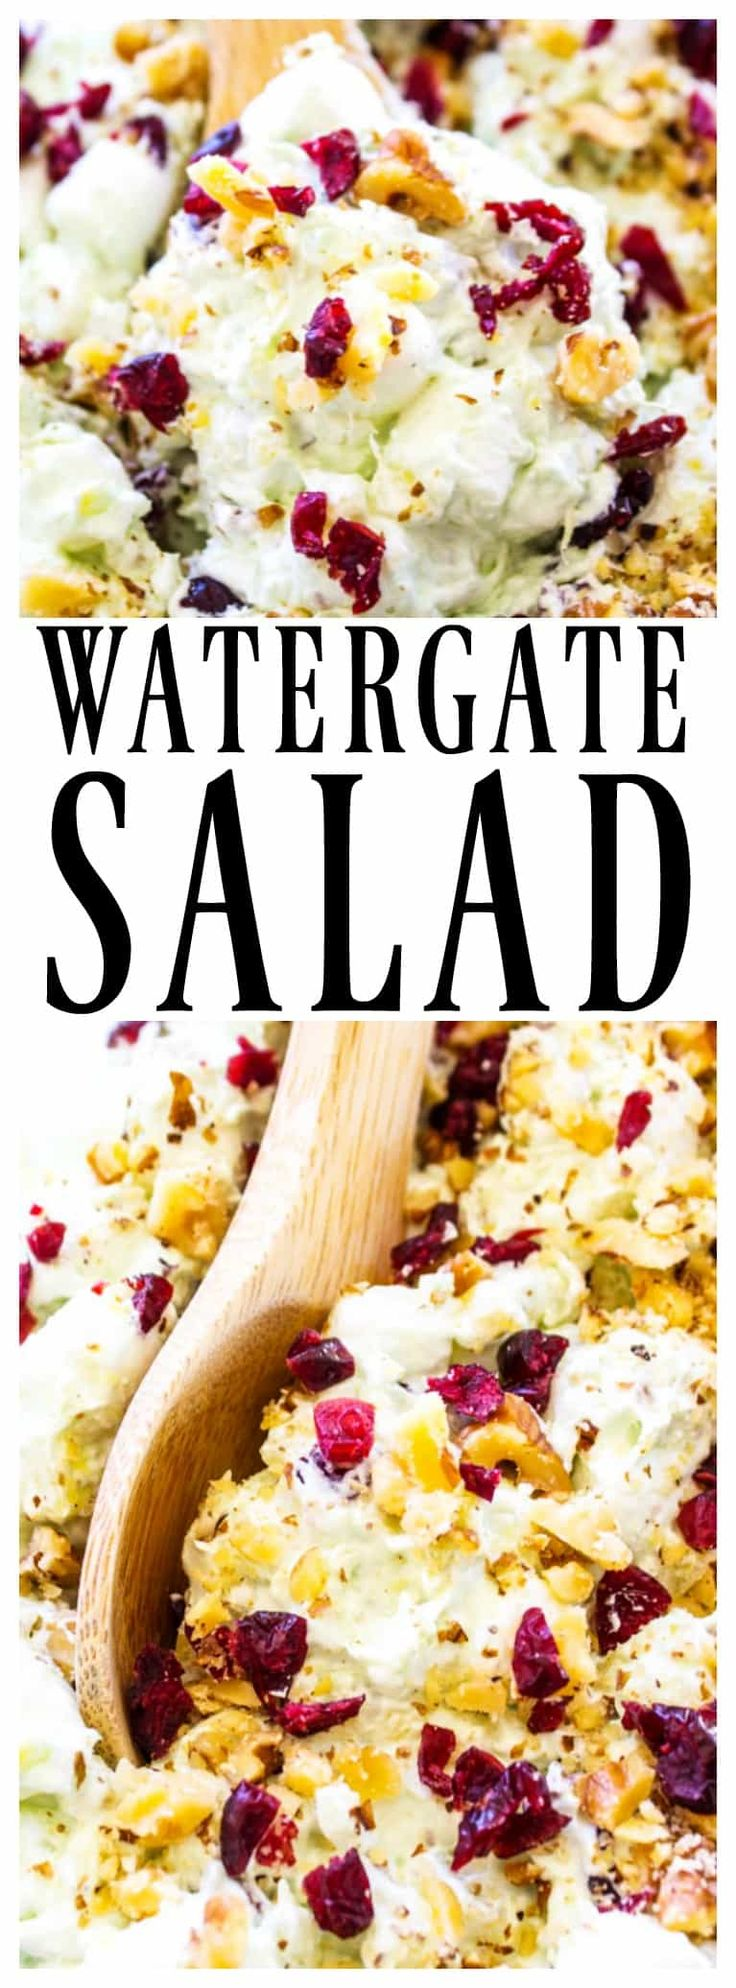 WATERGATE SALAD - A classic & traditional holiday side dish that everyone loves. Made with Cool Whip, marshmallows, pistachio pudding and pineapple, it's deliciously easy. #ad #christmas #recipes #holidays #sidedish #watergatesalad #salad #recipeideas #holidayrecipes